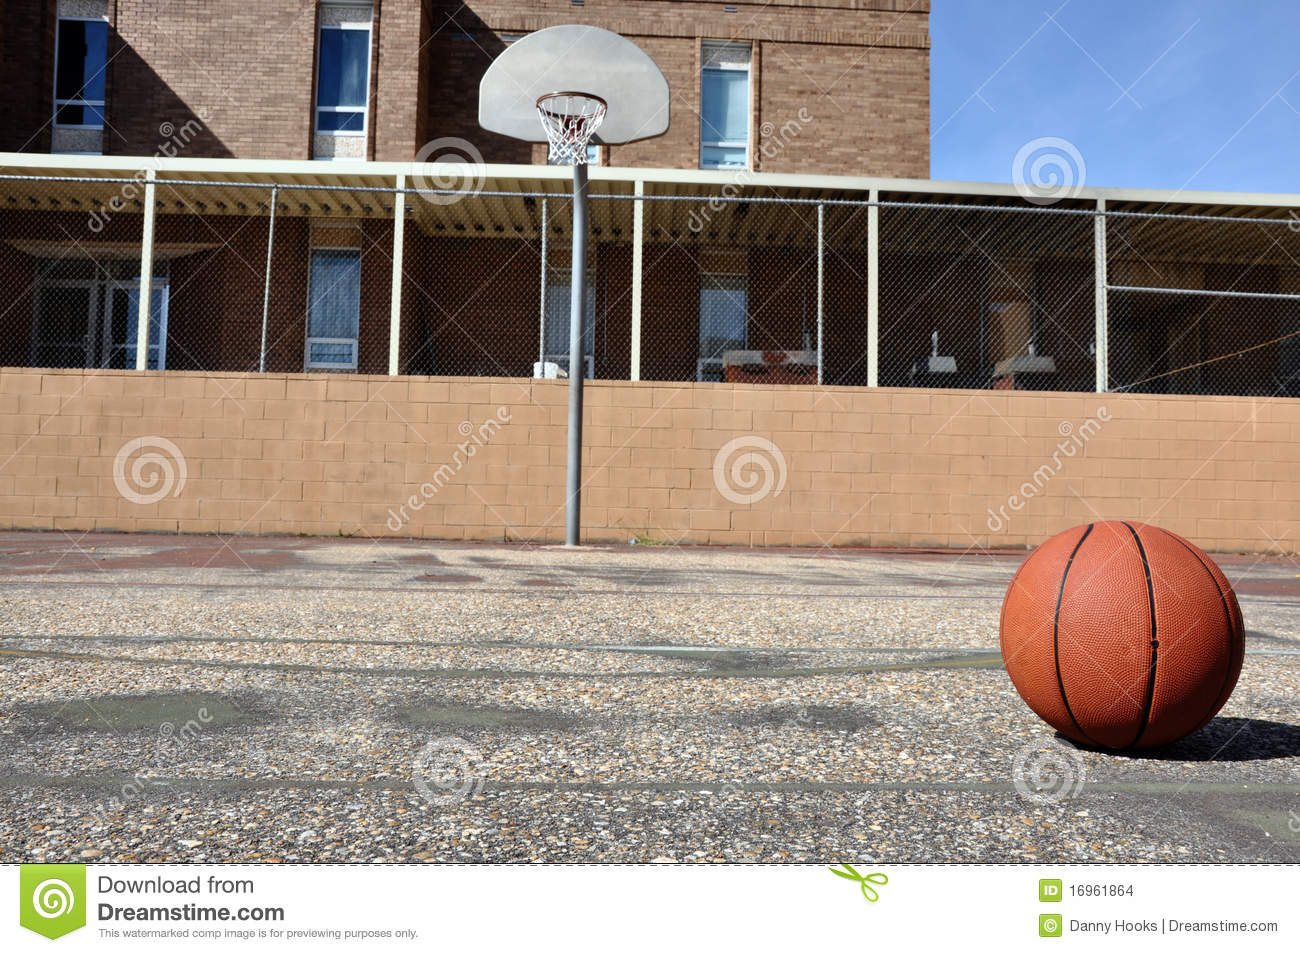 outdoor basketball court template - basketball court ideas home courts 95 bedroom basketball